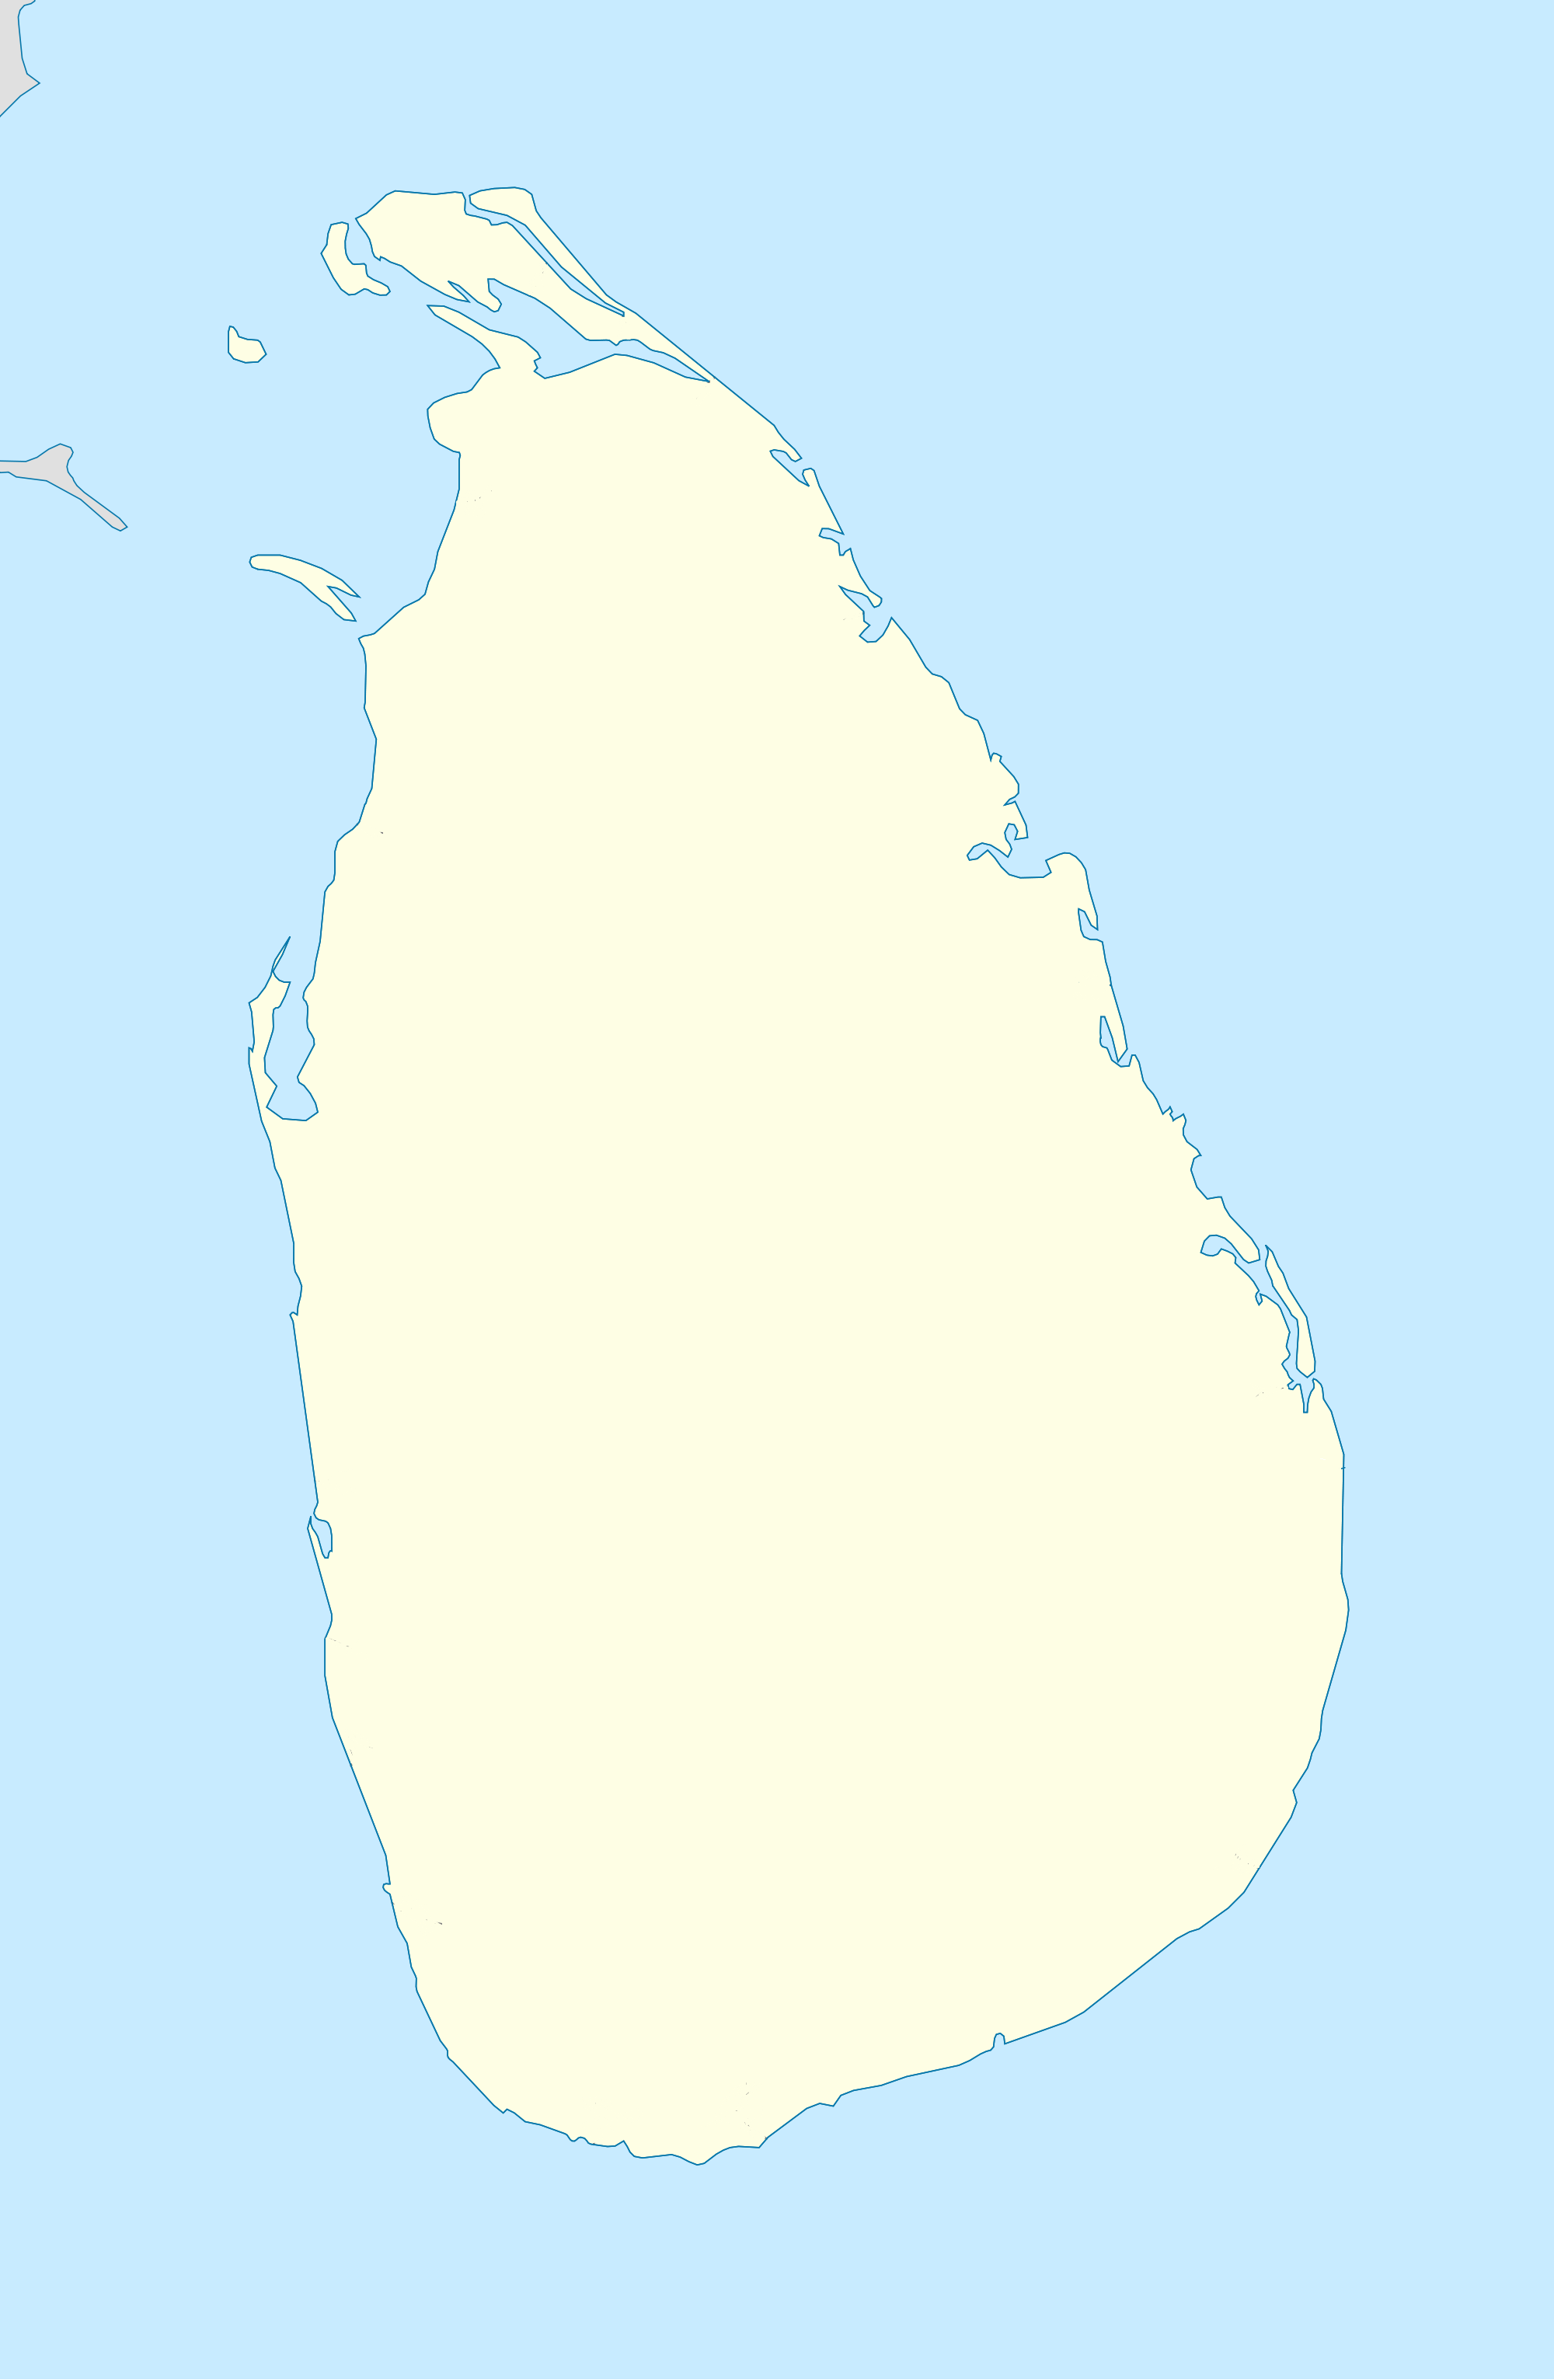 File:Sri Lanka location map Blank.png - Wikimedia Commons